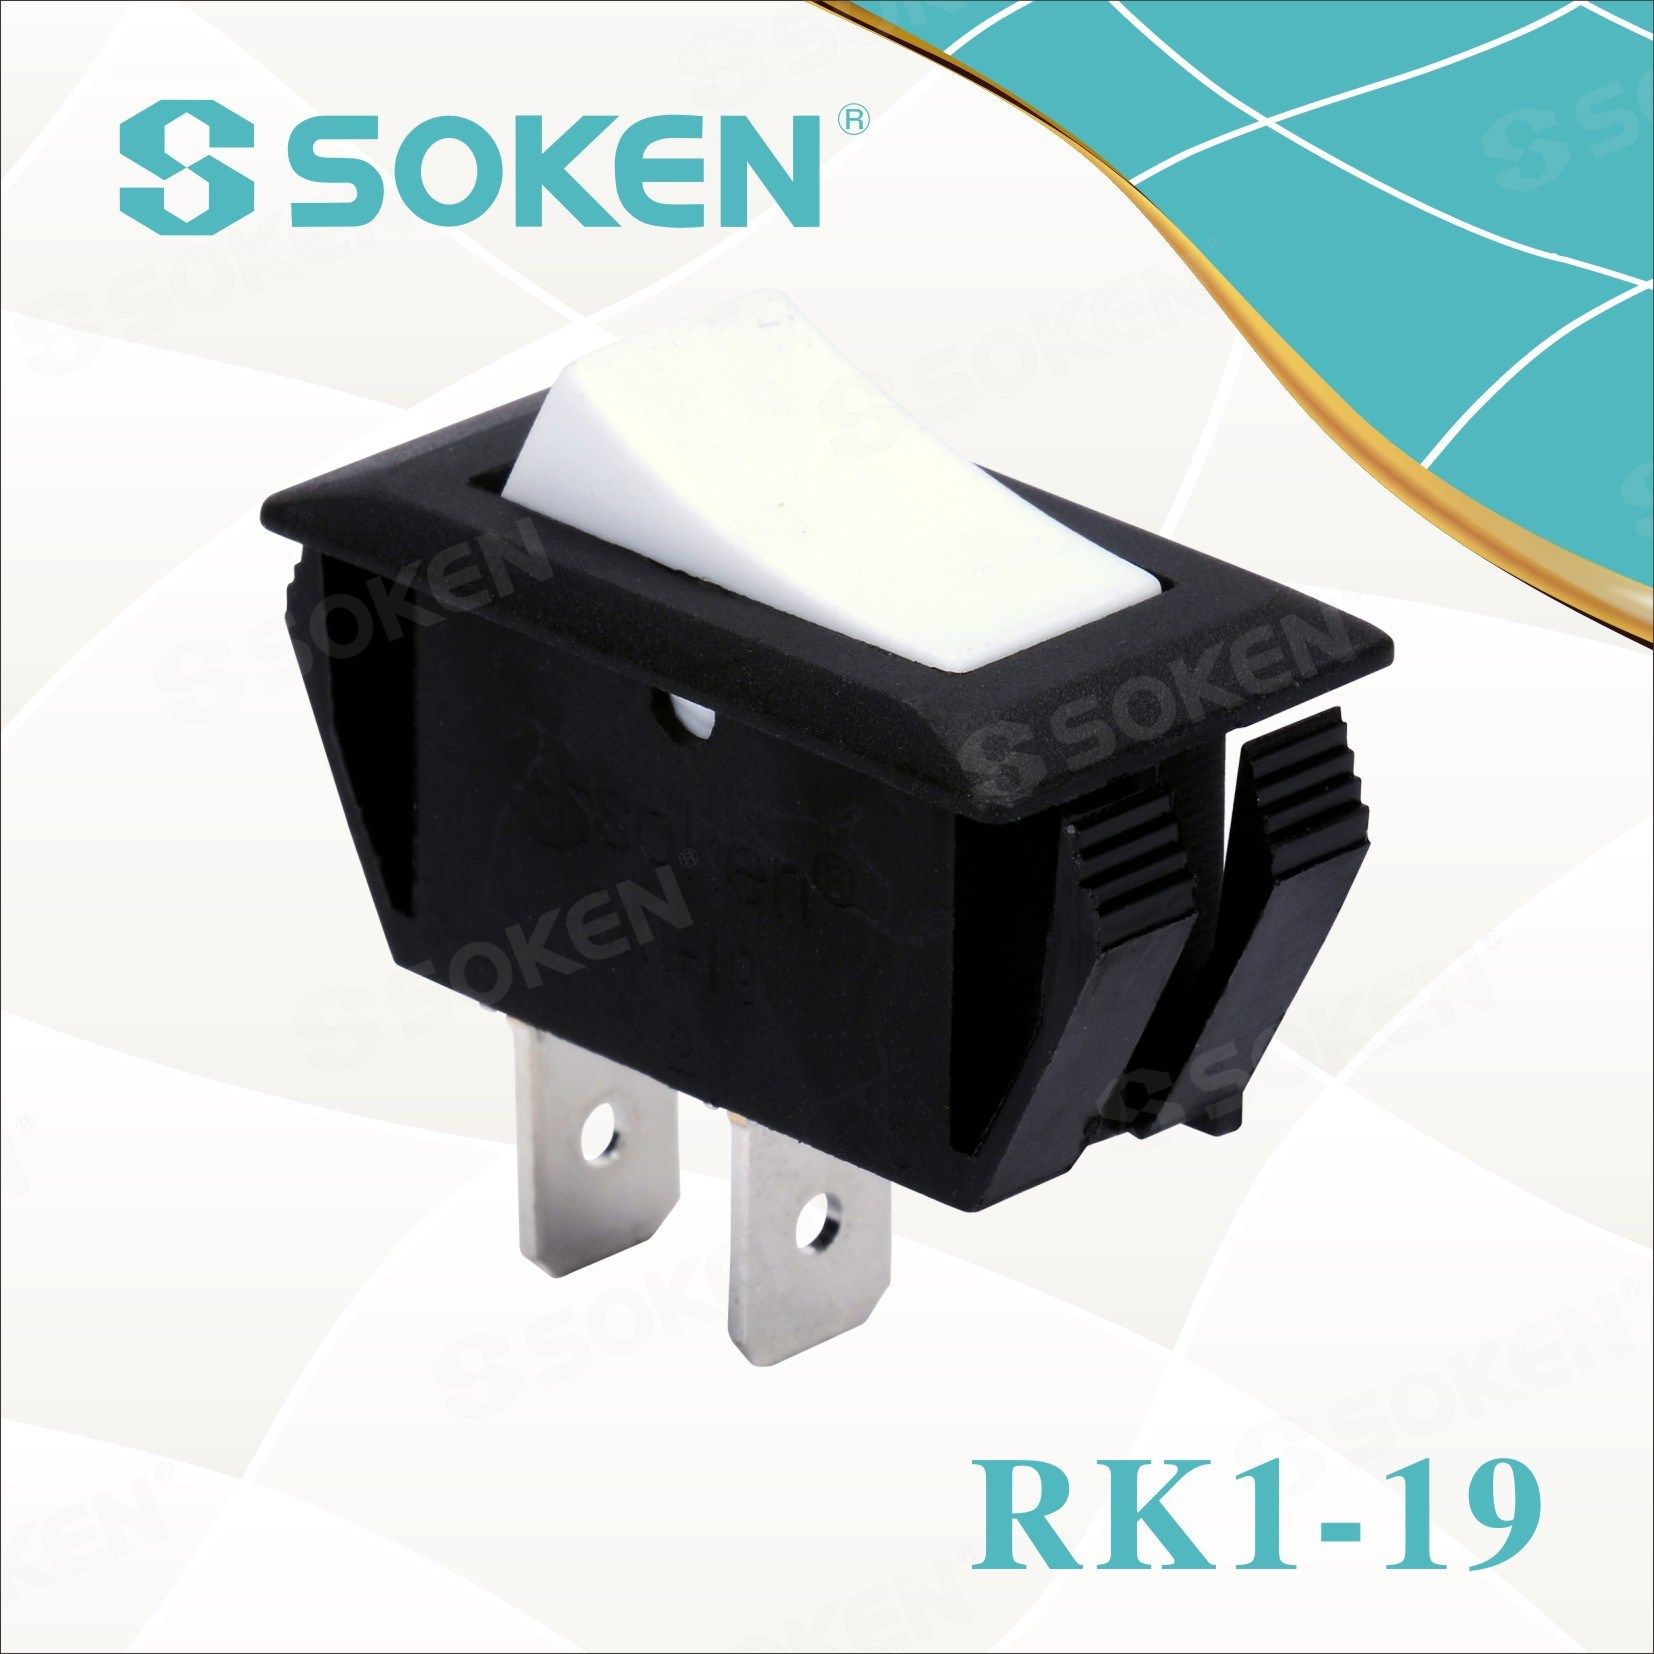 Soken 2 broches Commutateur à bascule 1X1 Rk1-19